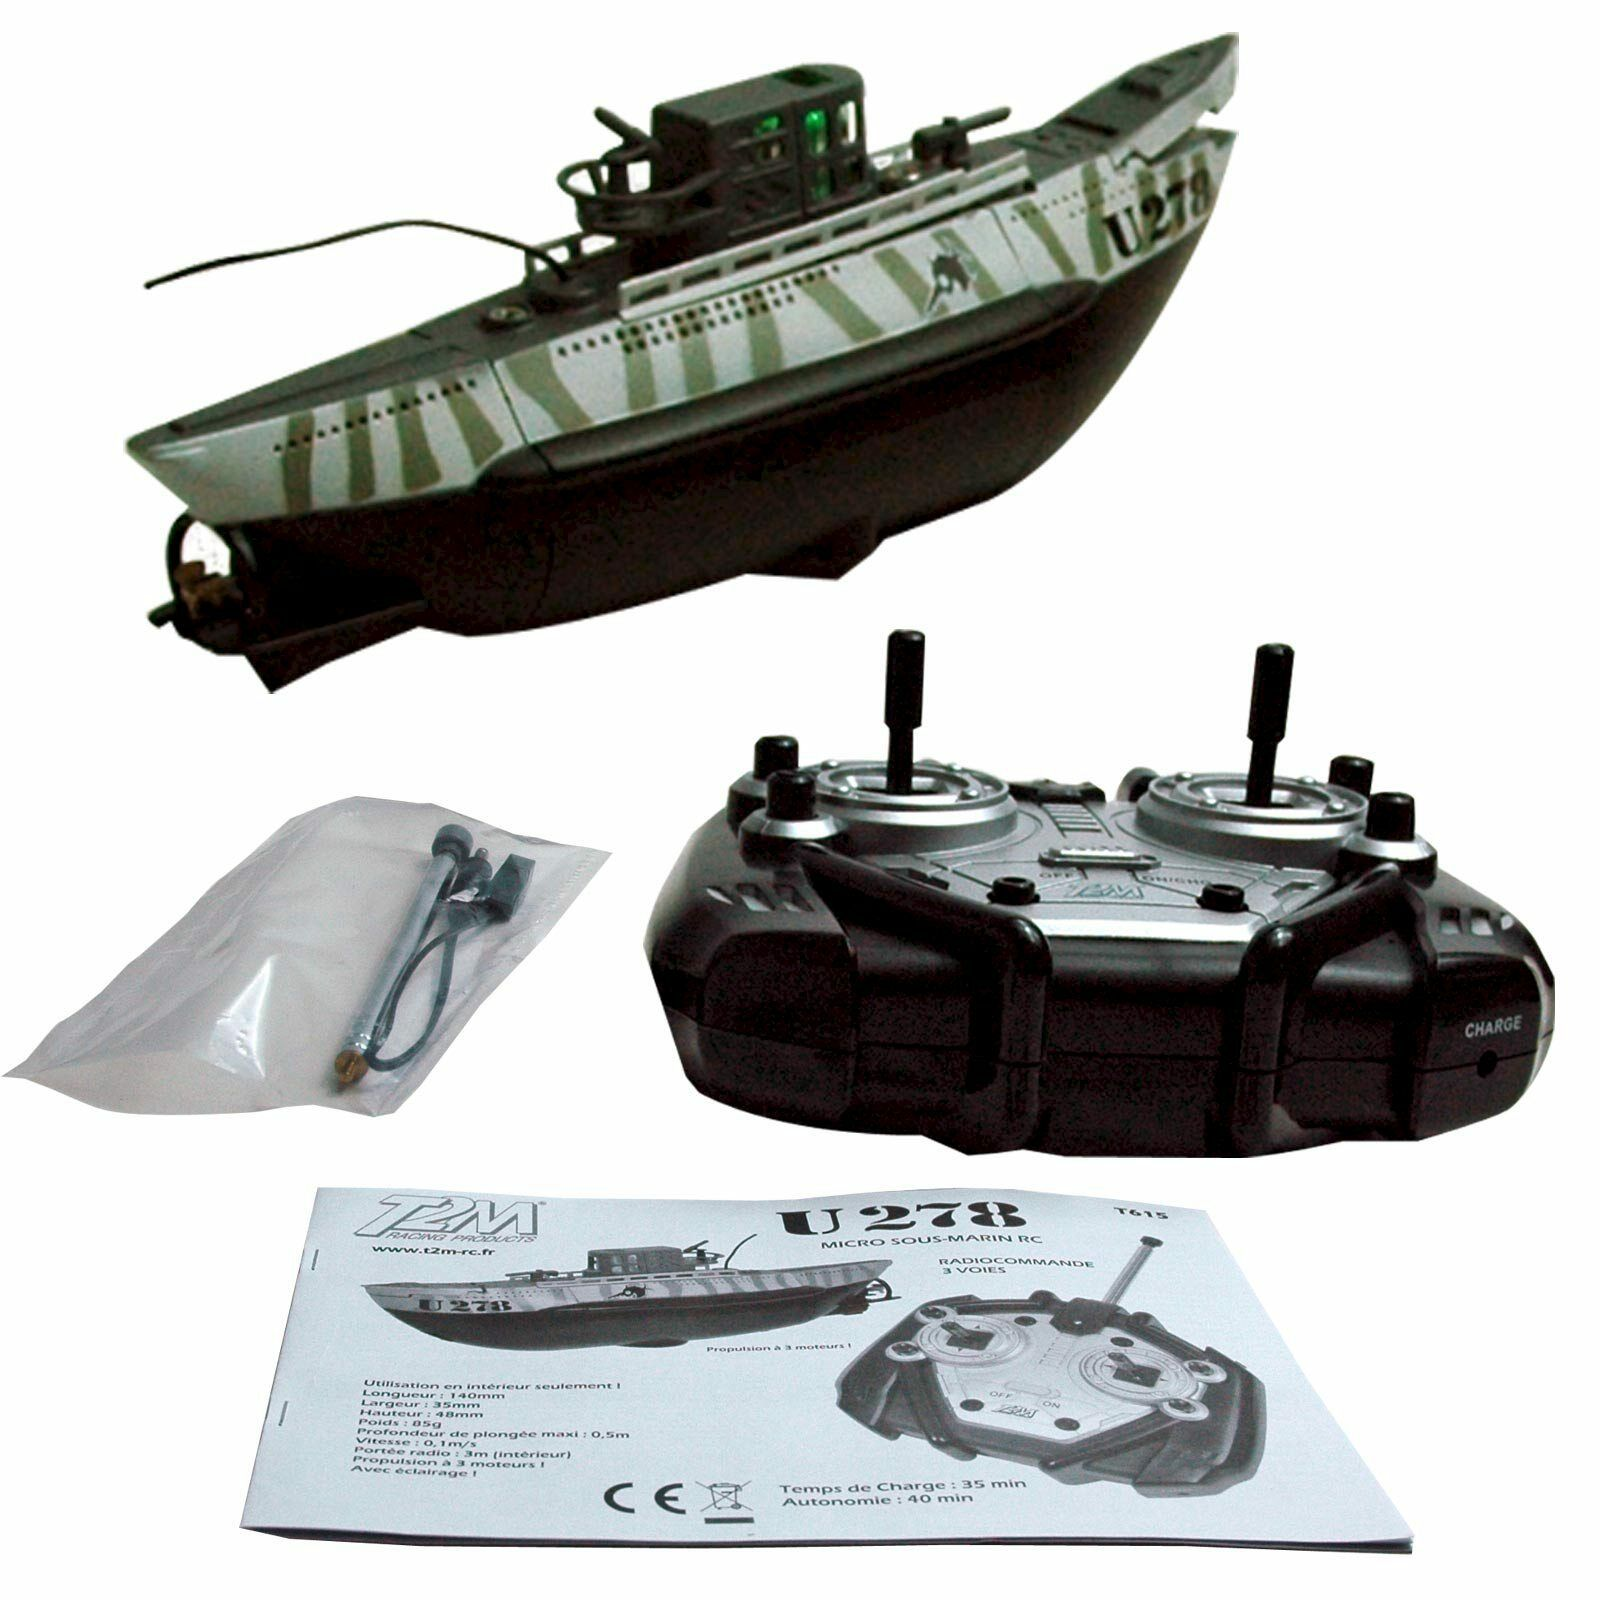 Radio Controlled U Boat U278 Von T2M with Lighting